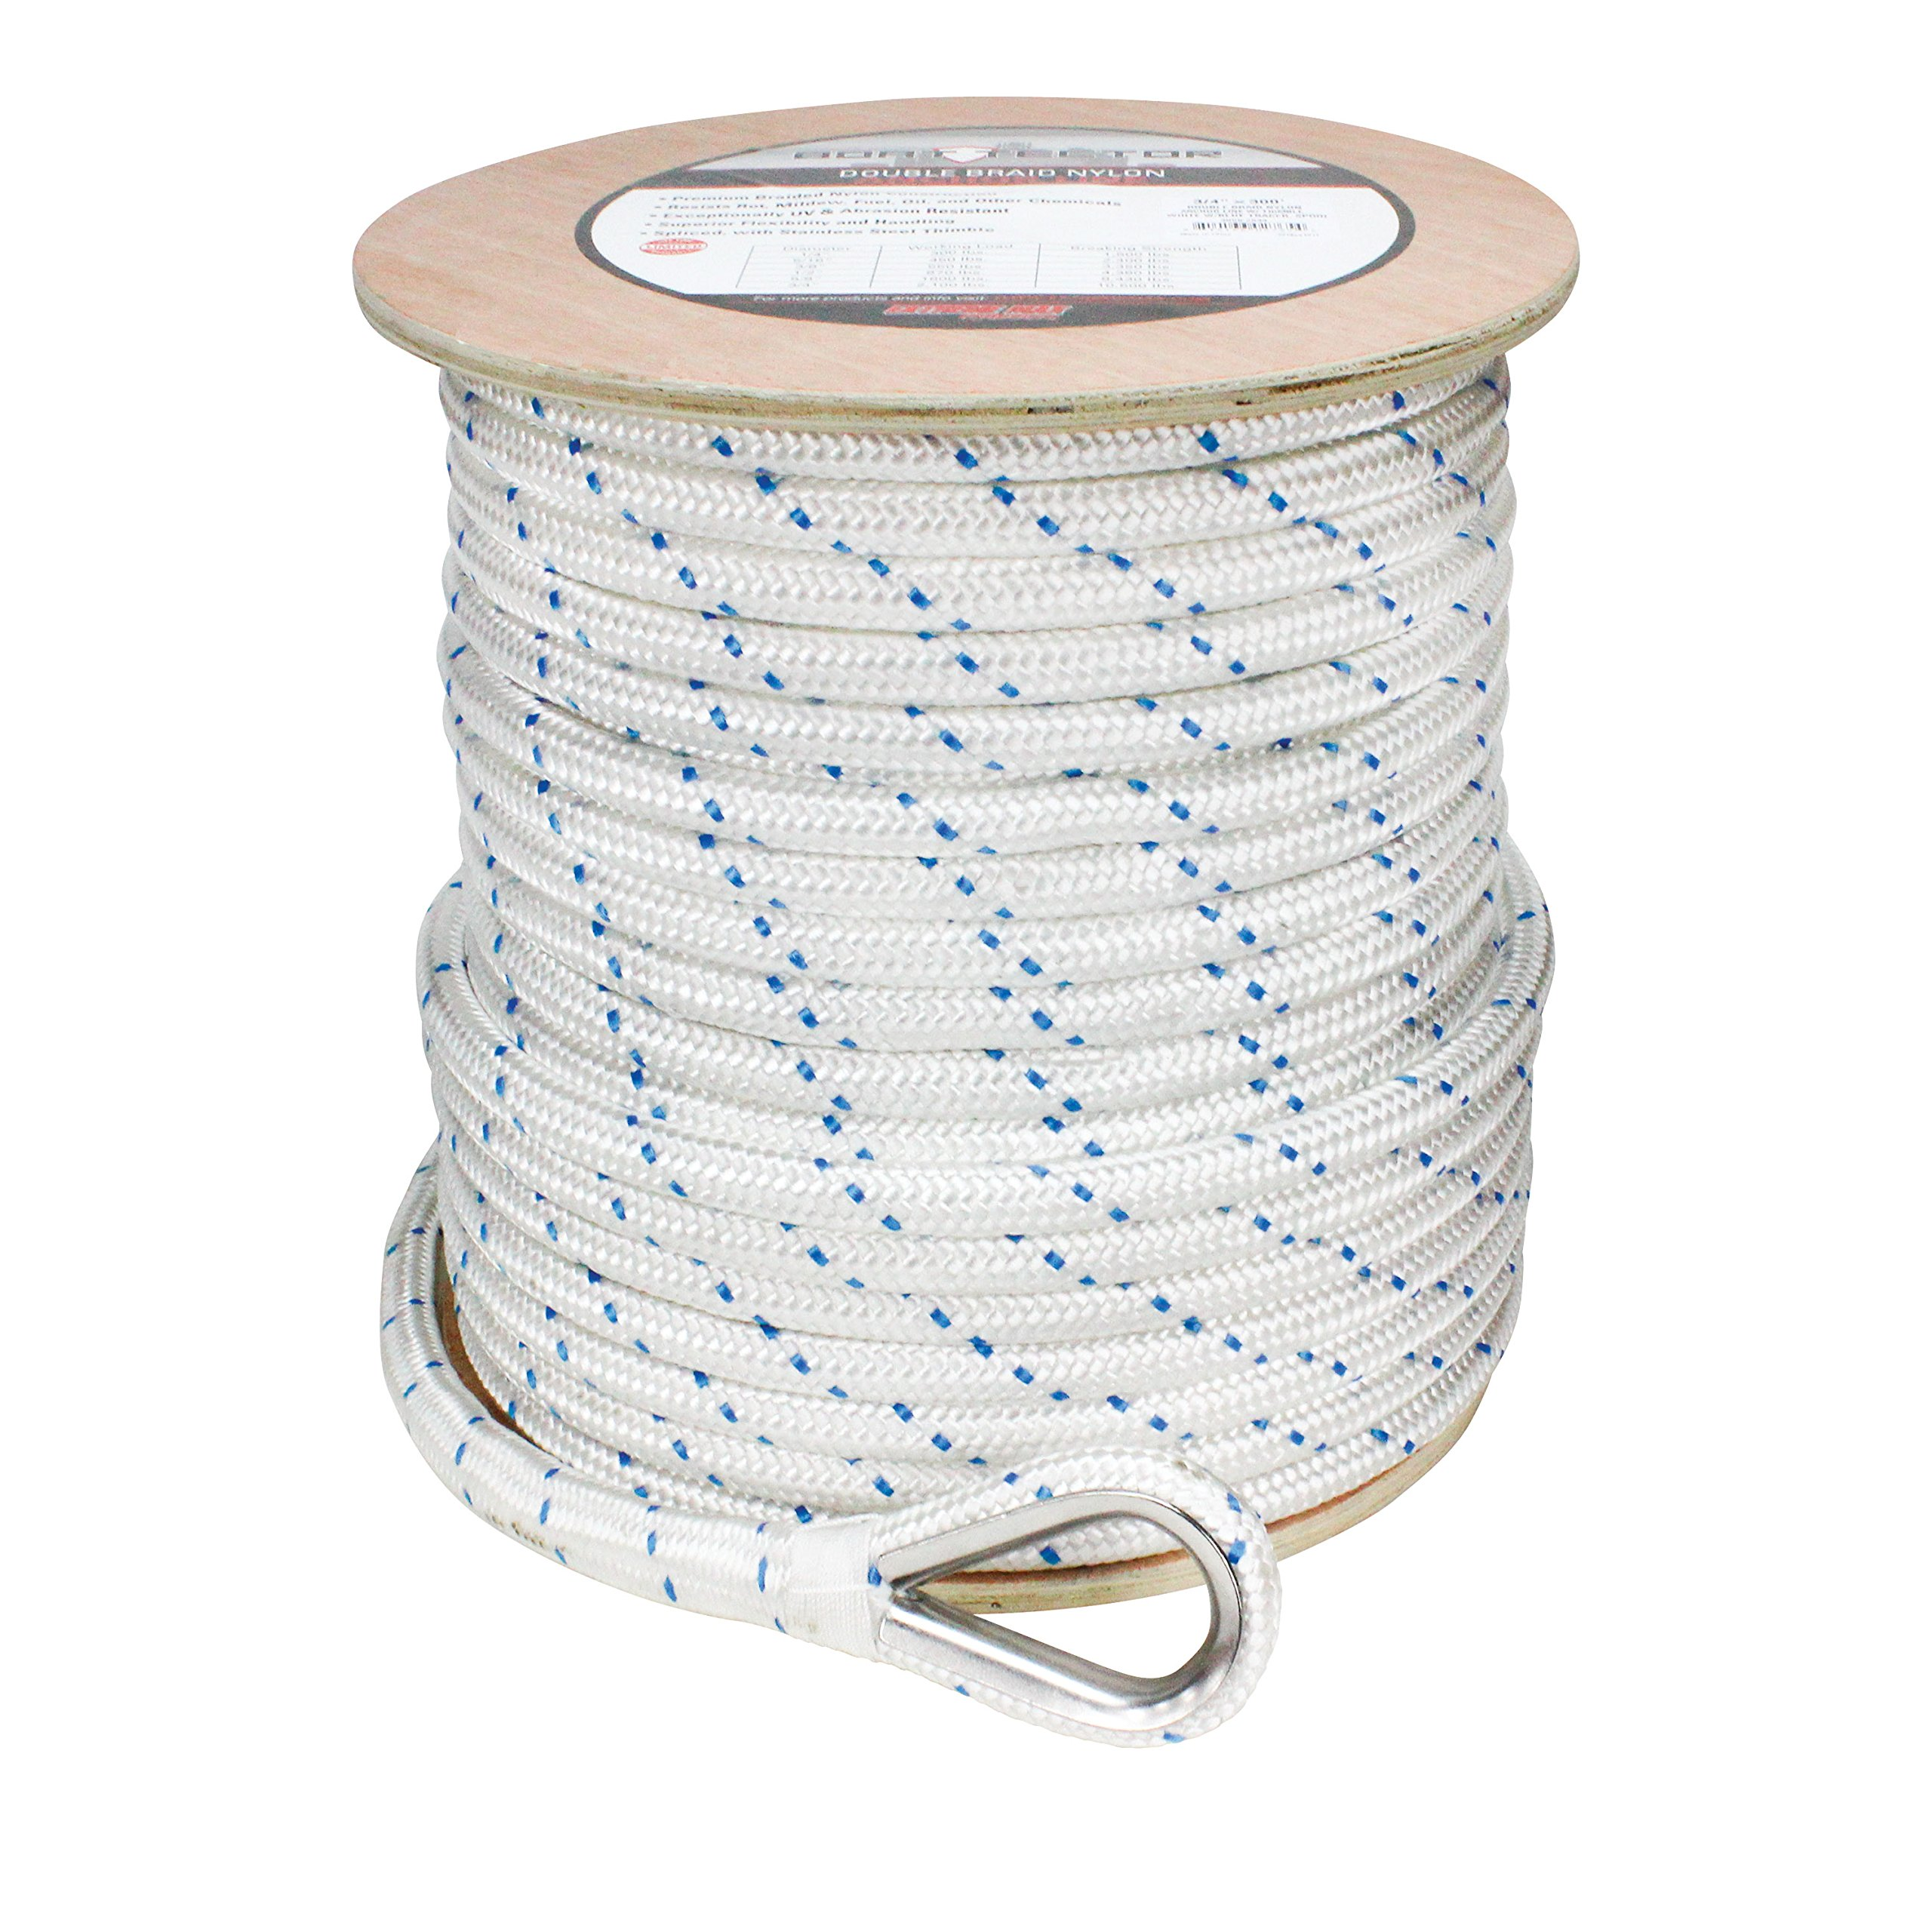 Extreme Max 3006.2535 White w/Blue Tracer 5/8'' x 250' BoatTector Double Braid Nylon Anchor Line with Thimble